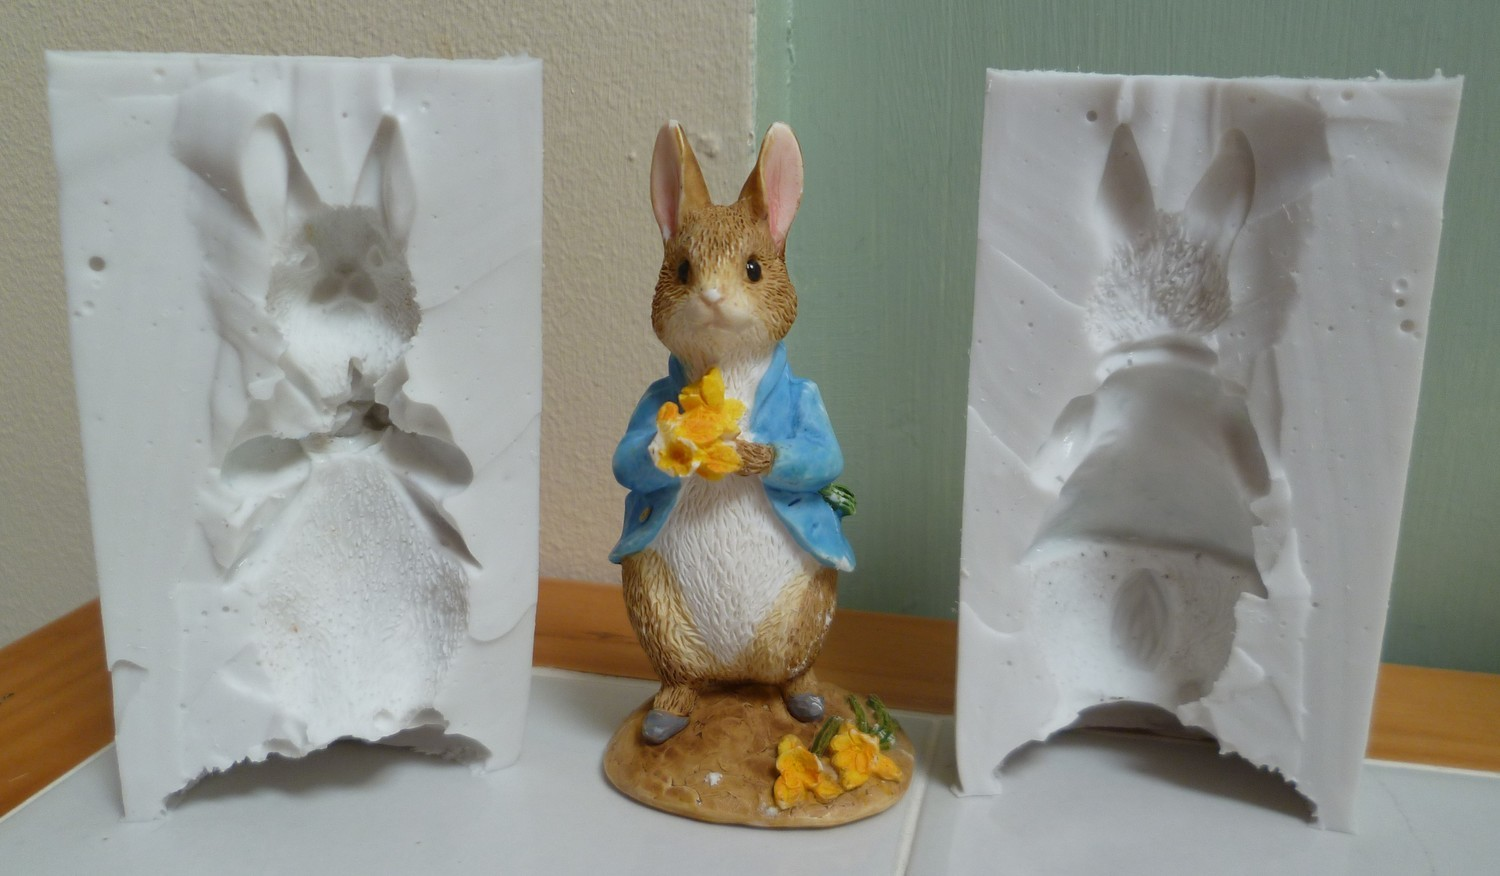 PETER RABBIT 3D SILICONE MOULD (POURABLE SILICONE)